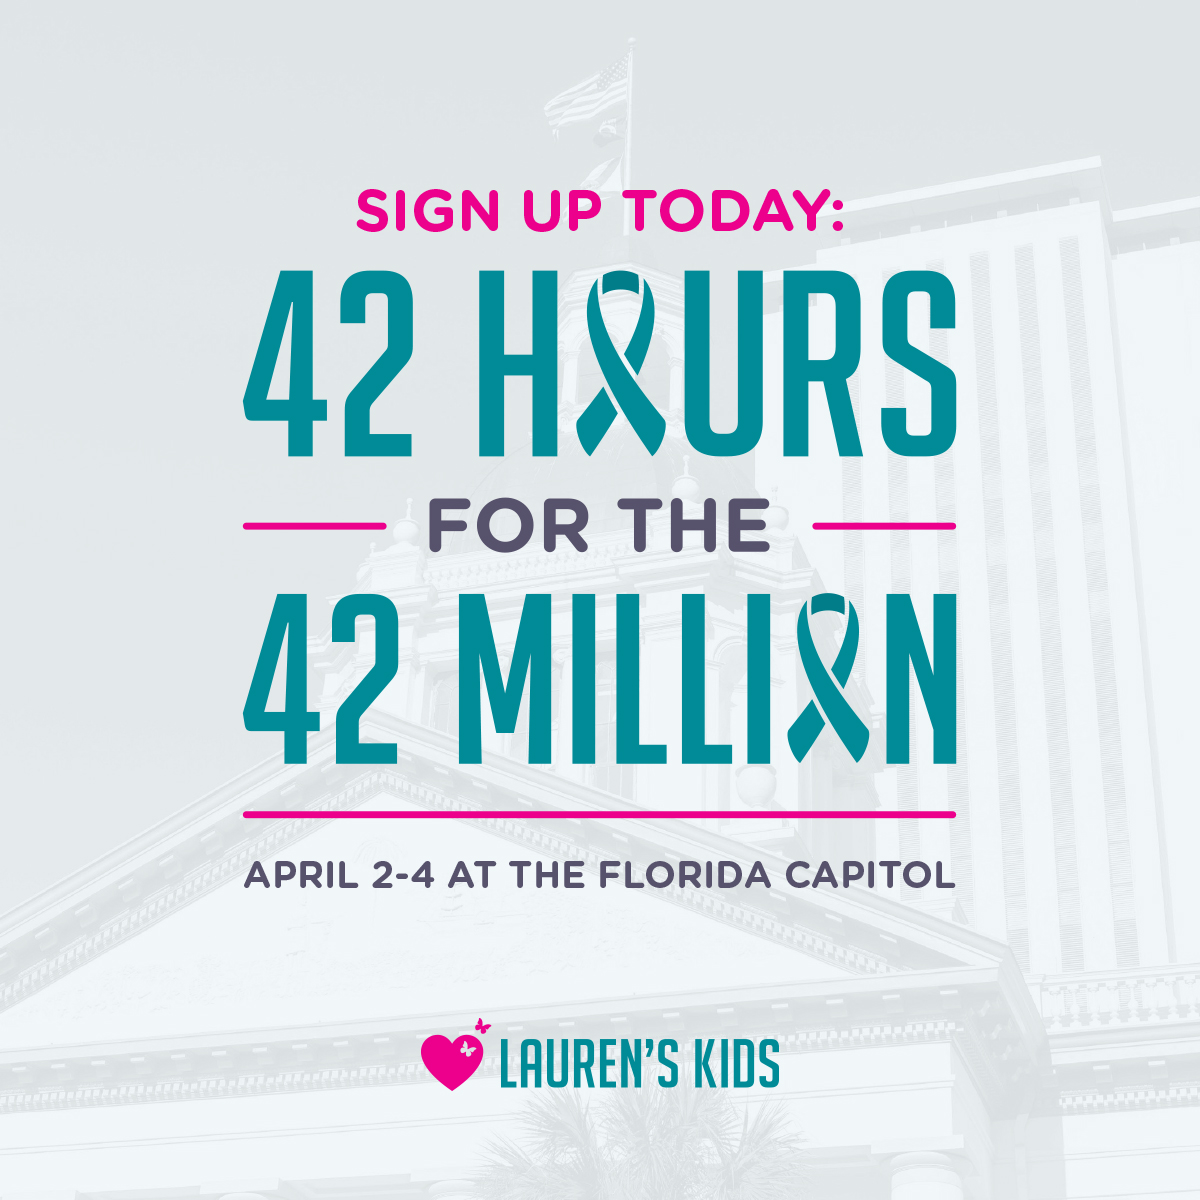 42 Hours: Sign Up Today